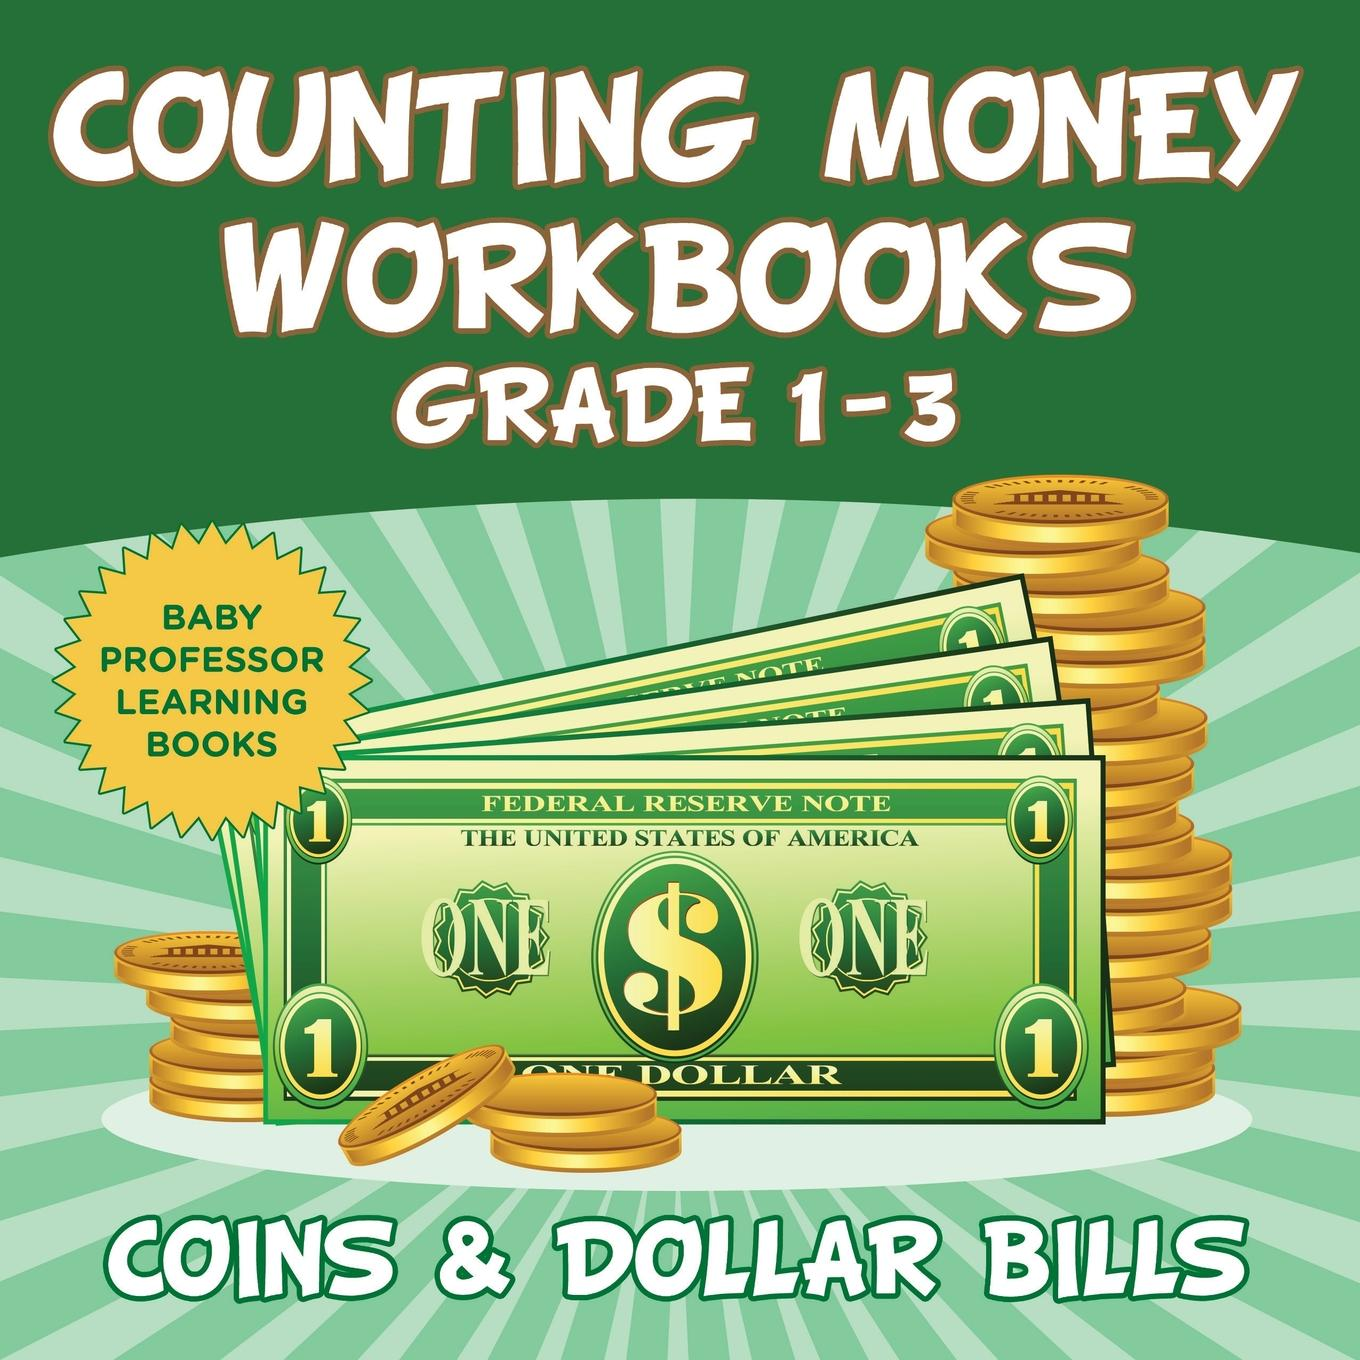 Counting Money Workbooks Grade 1